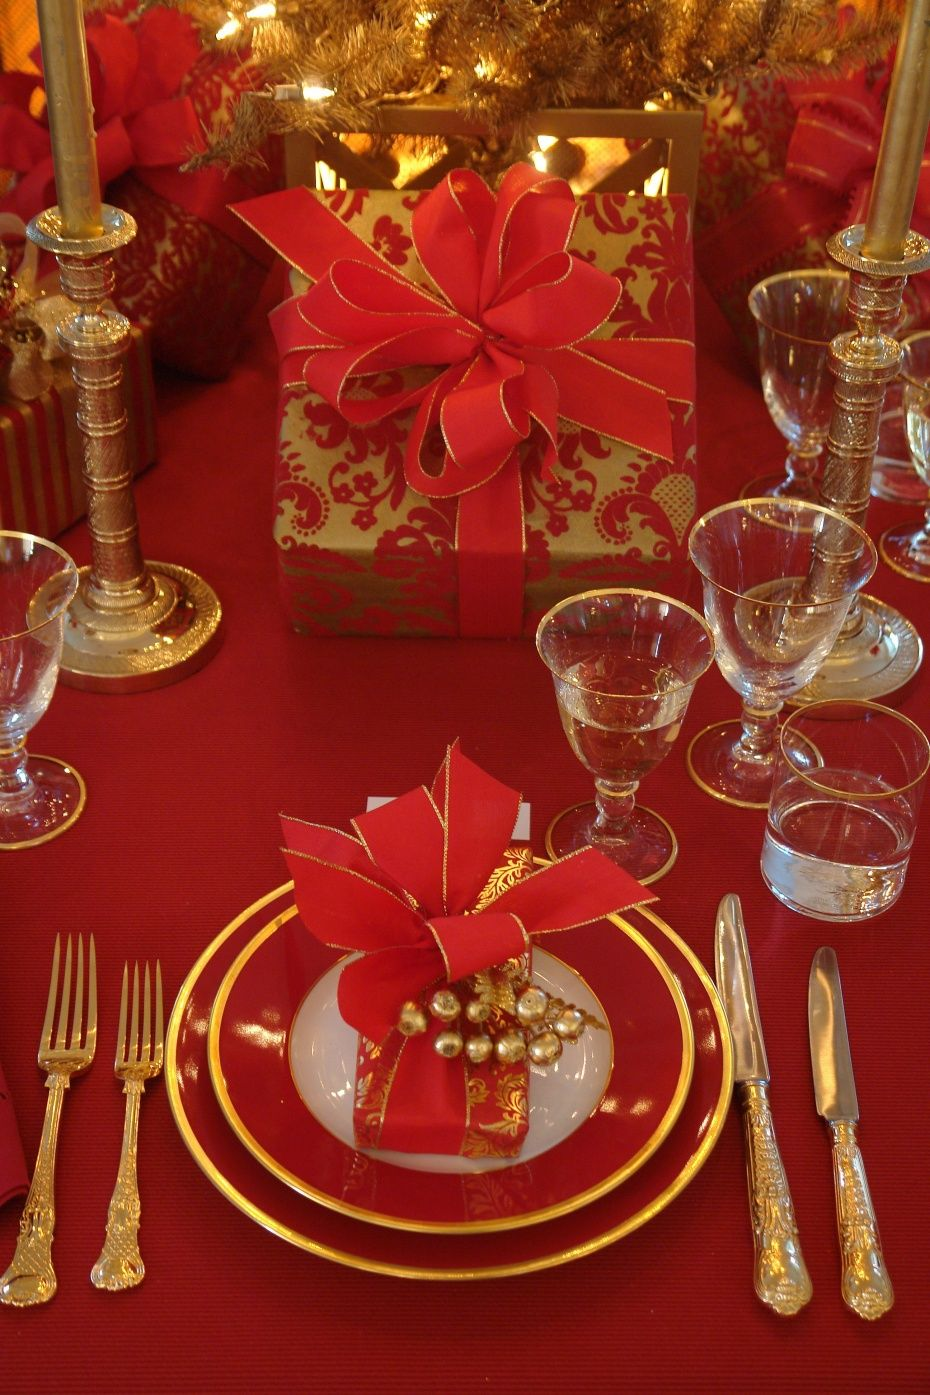 Christmas or holidays wedding winter wedding red and gold color wedding. Wedding reception decor and decorating ideas and inspiration for and elegant and ... & Christmas or holidays wedding winter wedding red and gold color ...